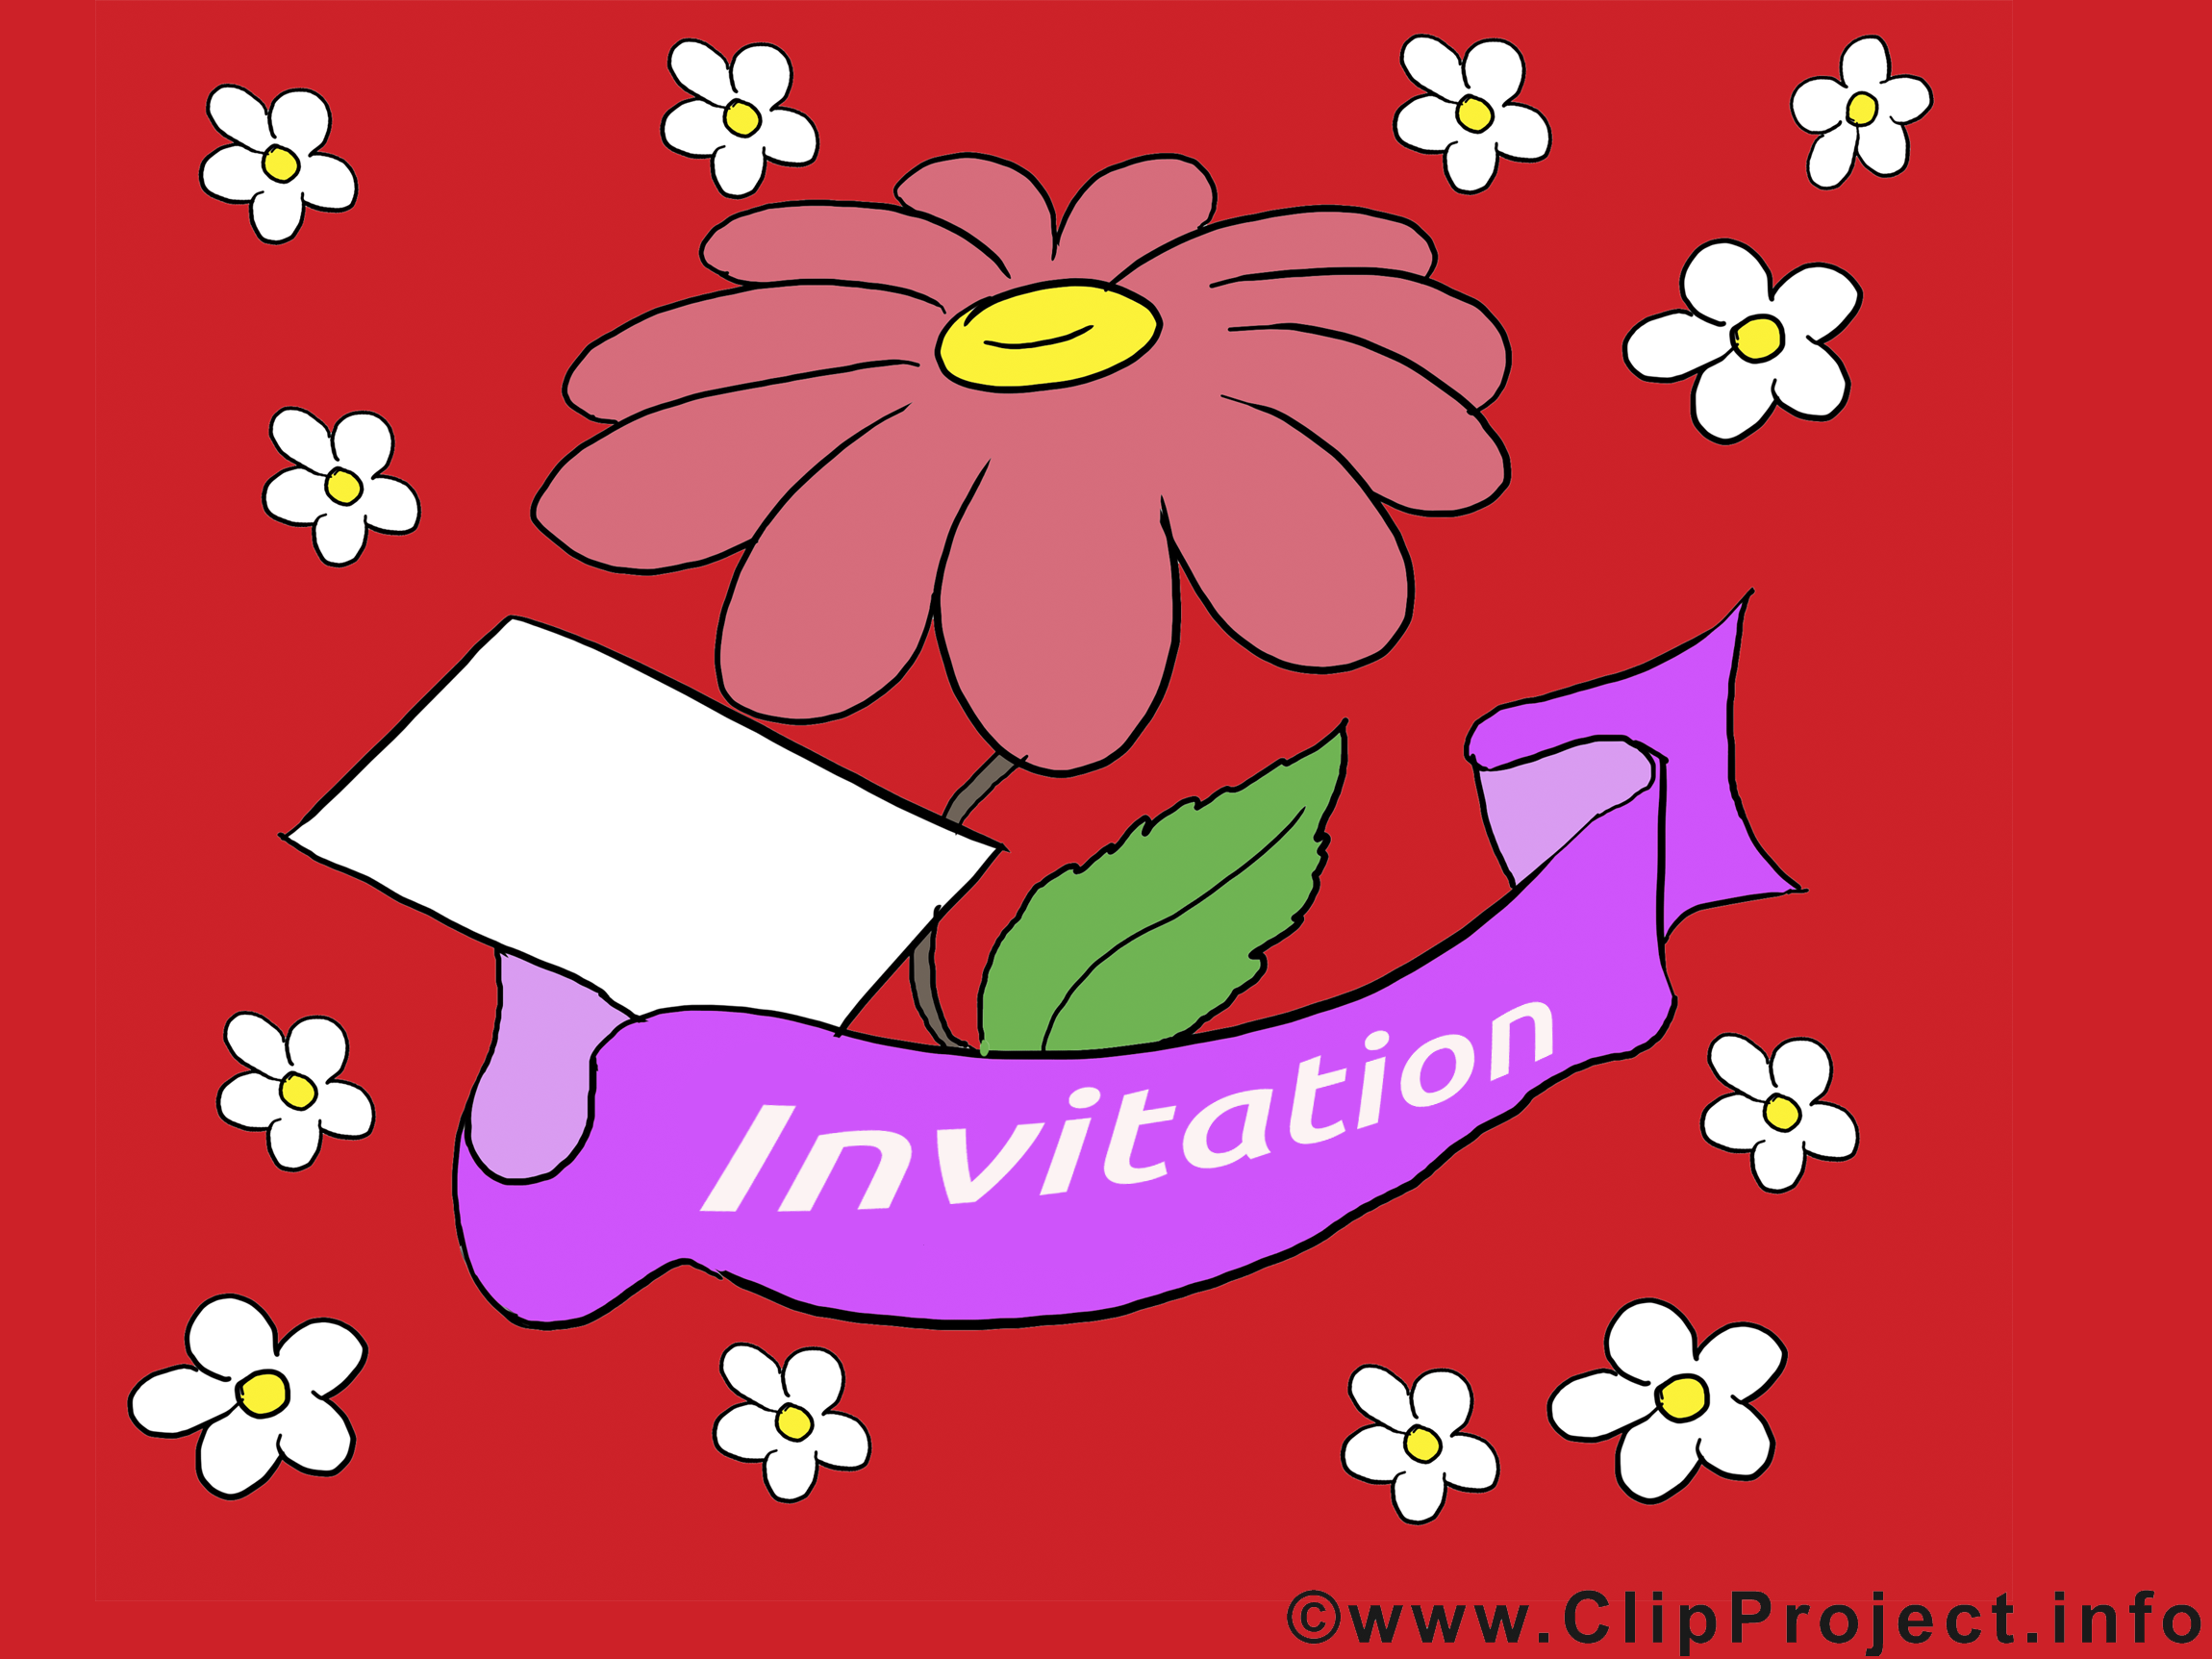 Illustration gratuite fleur - Invitation clipart